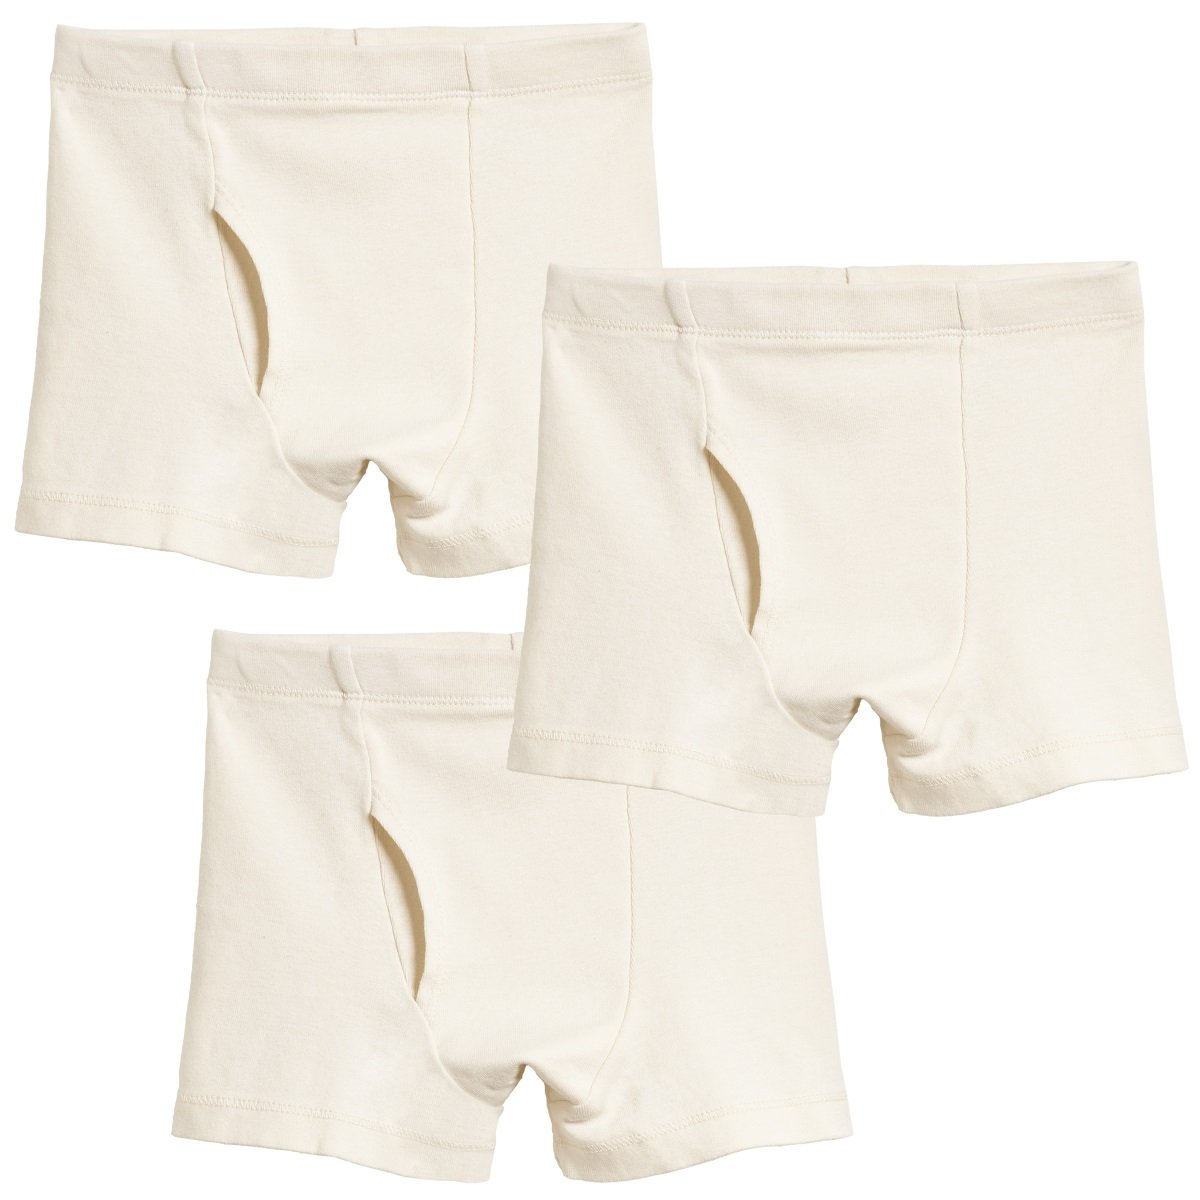 City Threads Little Boys Organic Cotton Boxer Brief for Sensitive Skin and SPD Sensory Friendly Clothing, 3Pack Oatmeal, 6